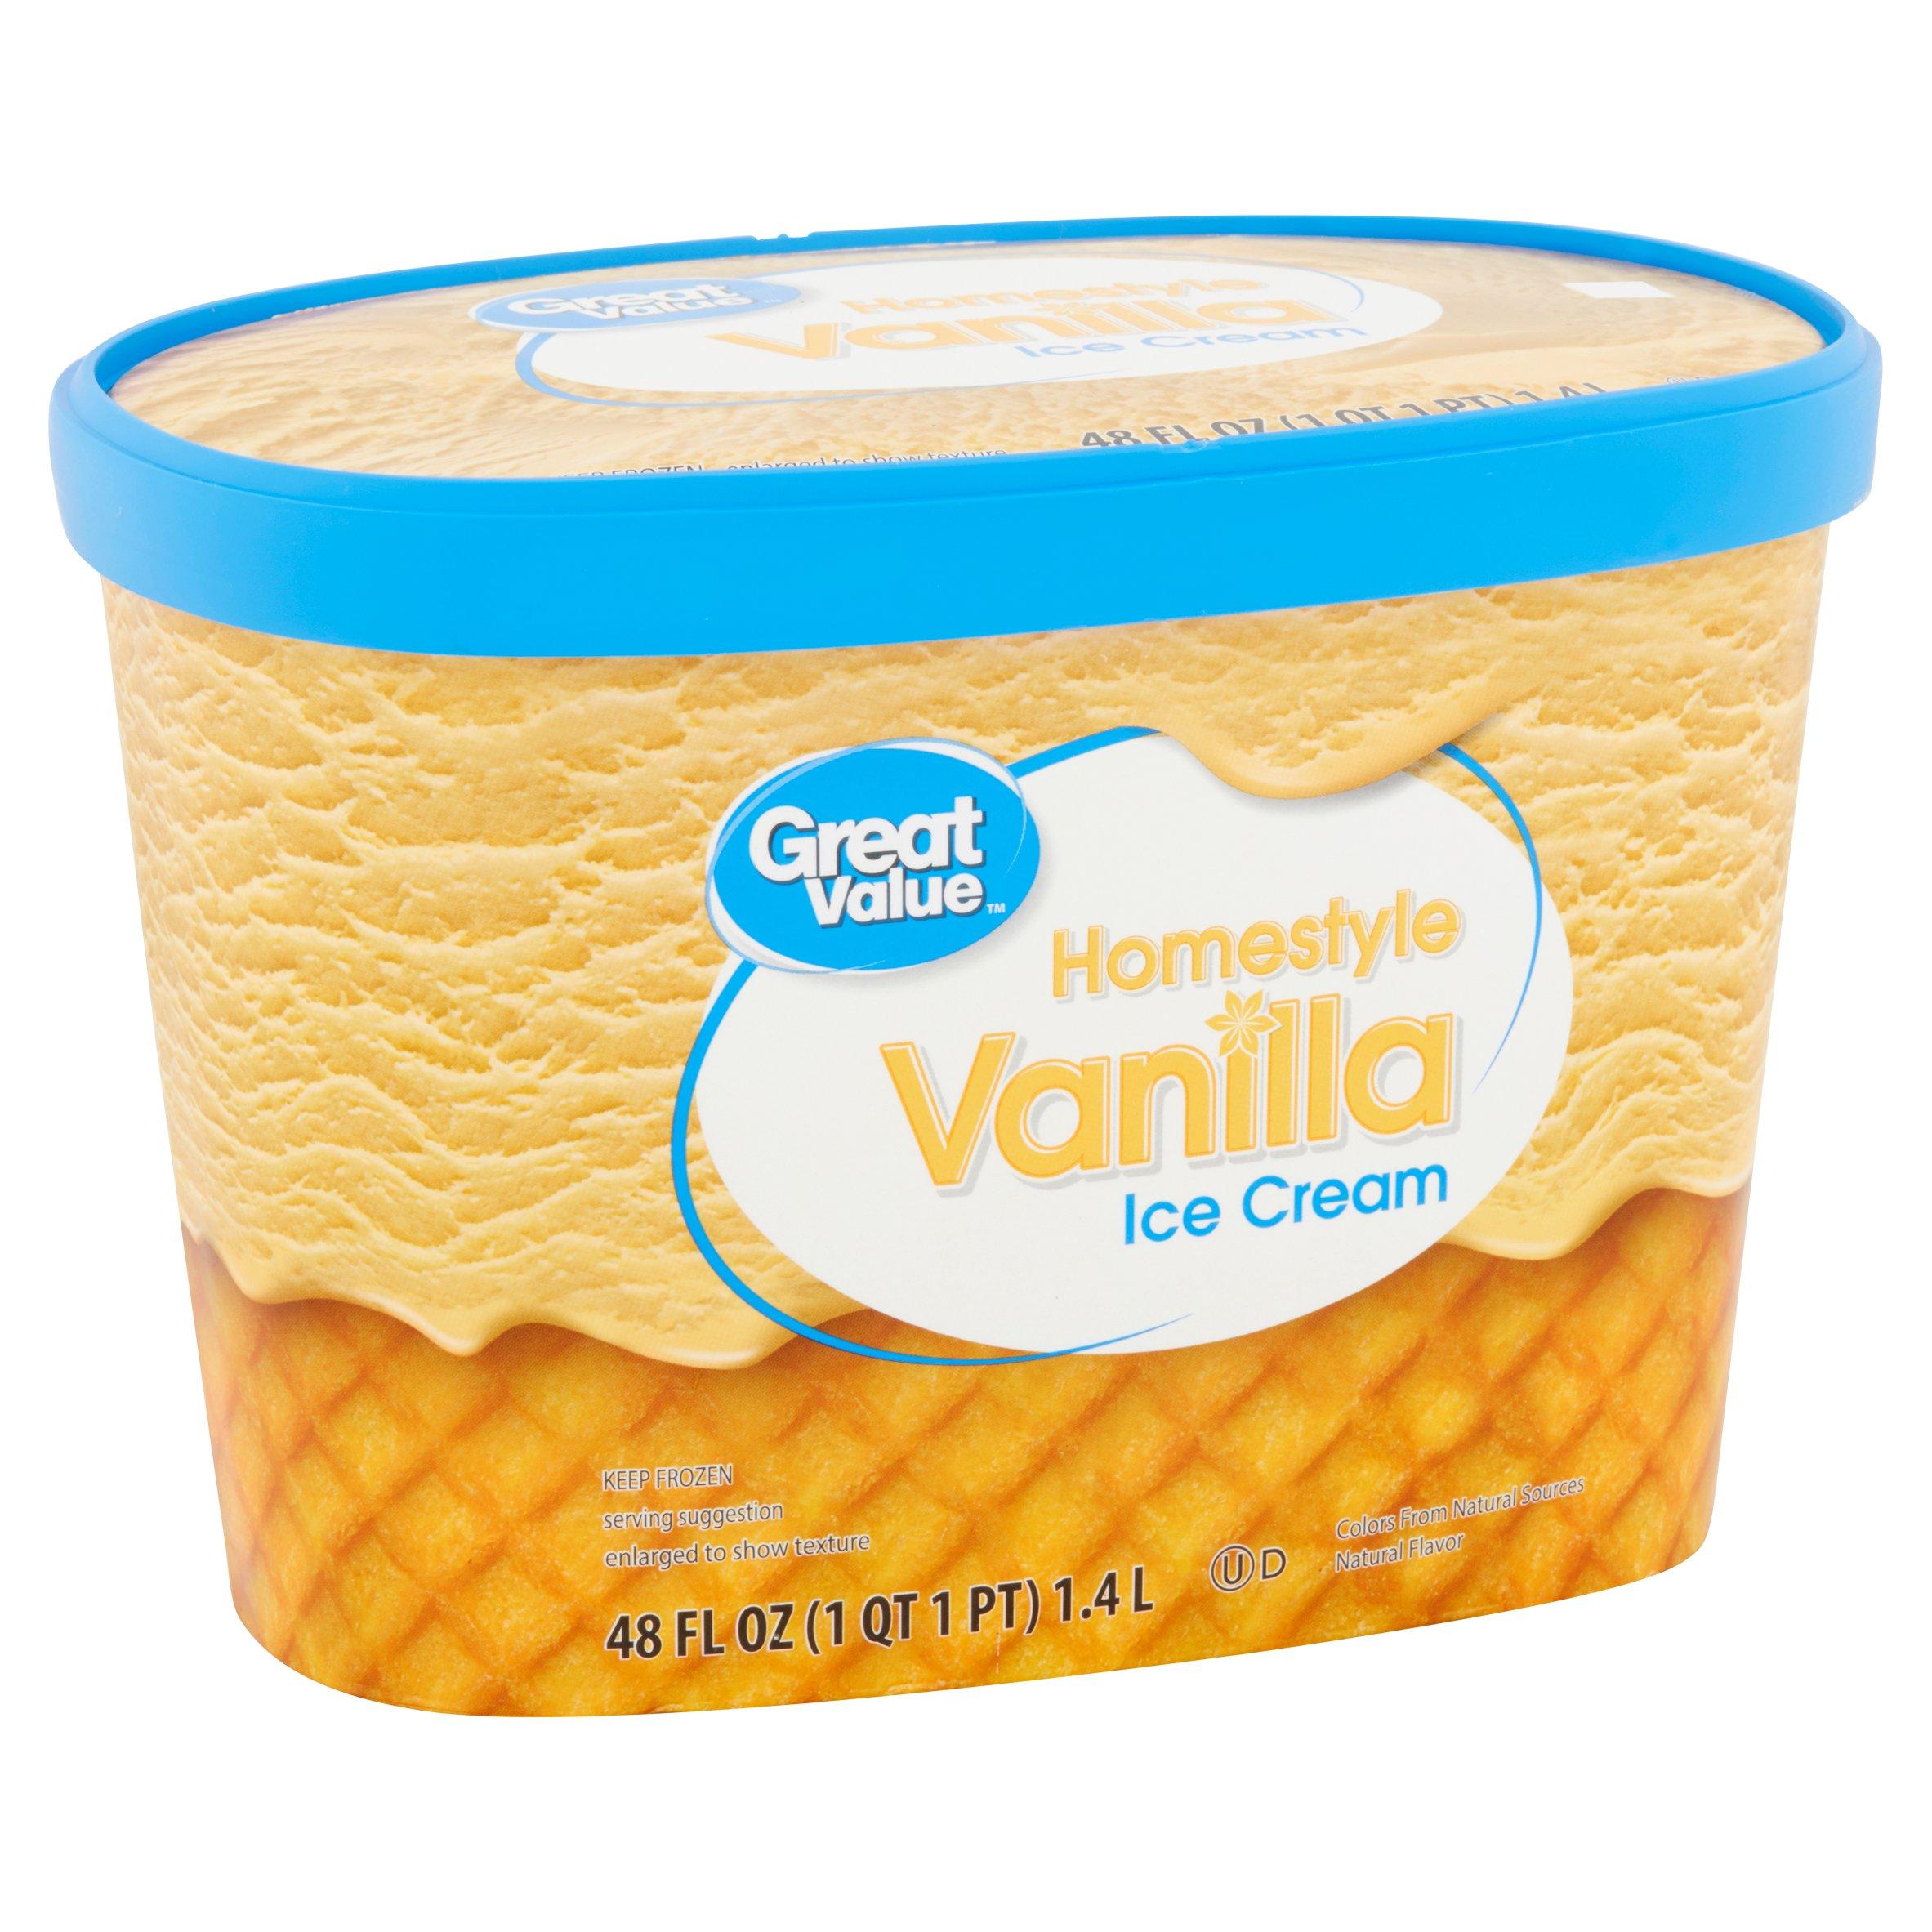 Great Value Homestyle Vanilla Ice Cream, 48 fl oz - Walmart.com